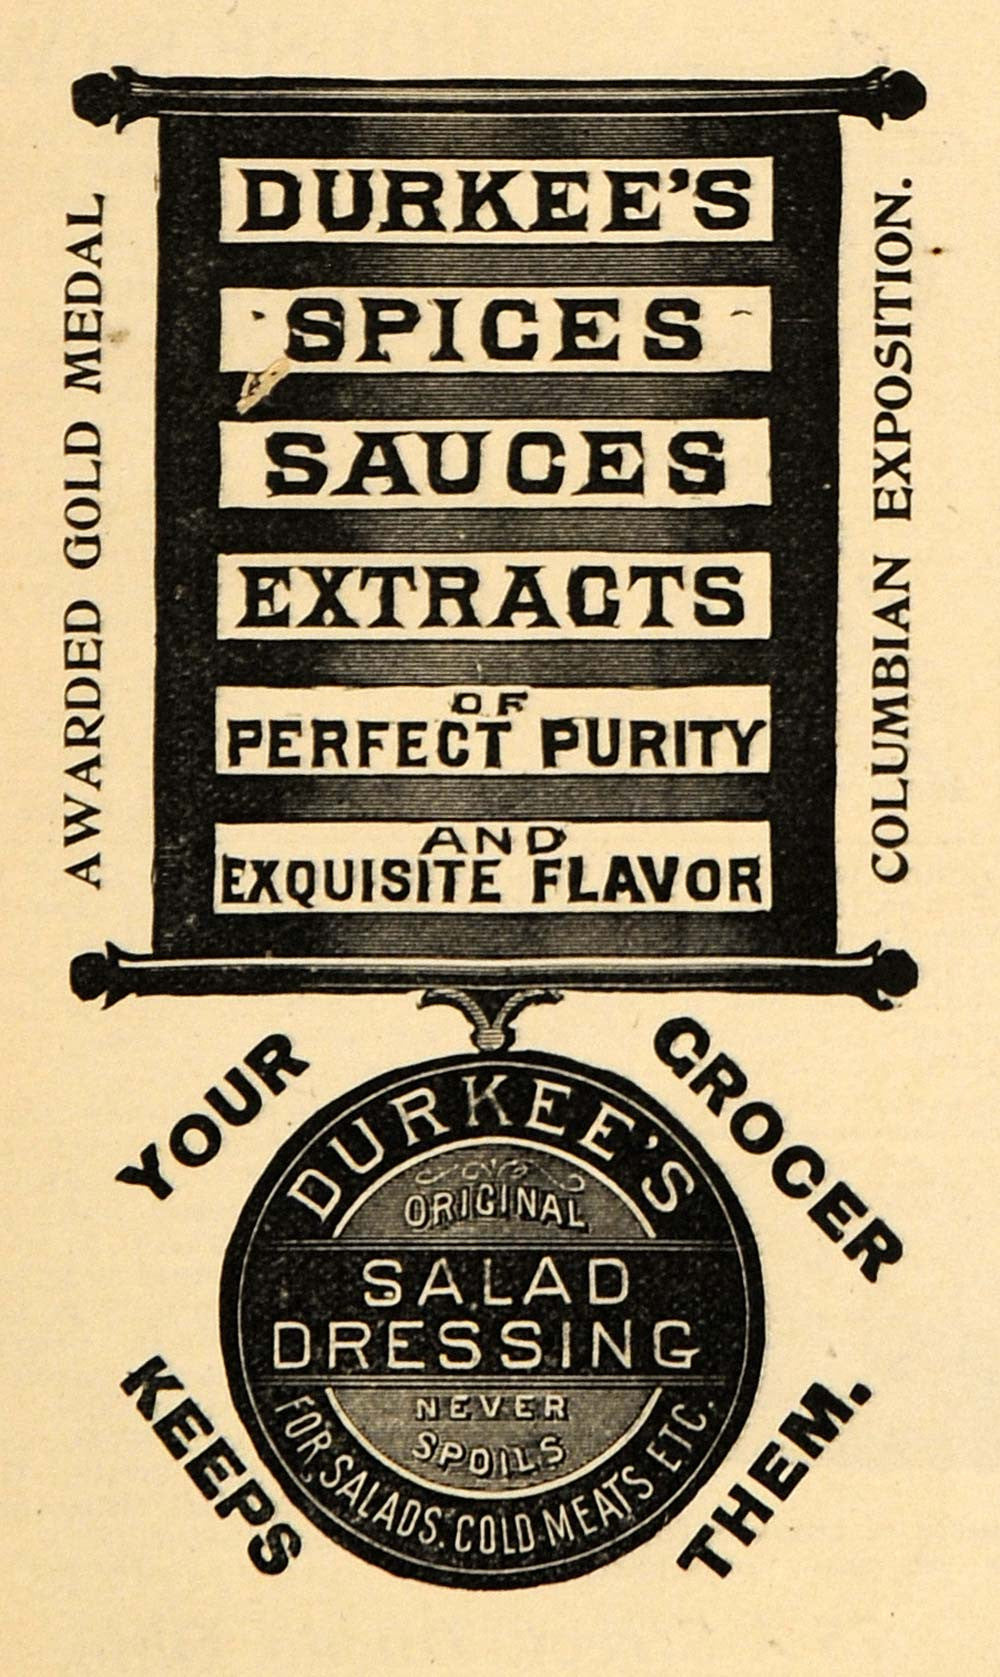 1895 Ad Durkees Spice Sauce Extract Salad Dressing Gold - ORIGINAL MUN1